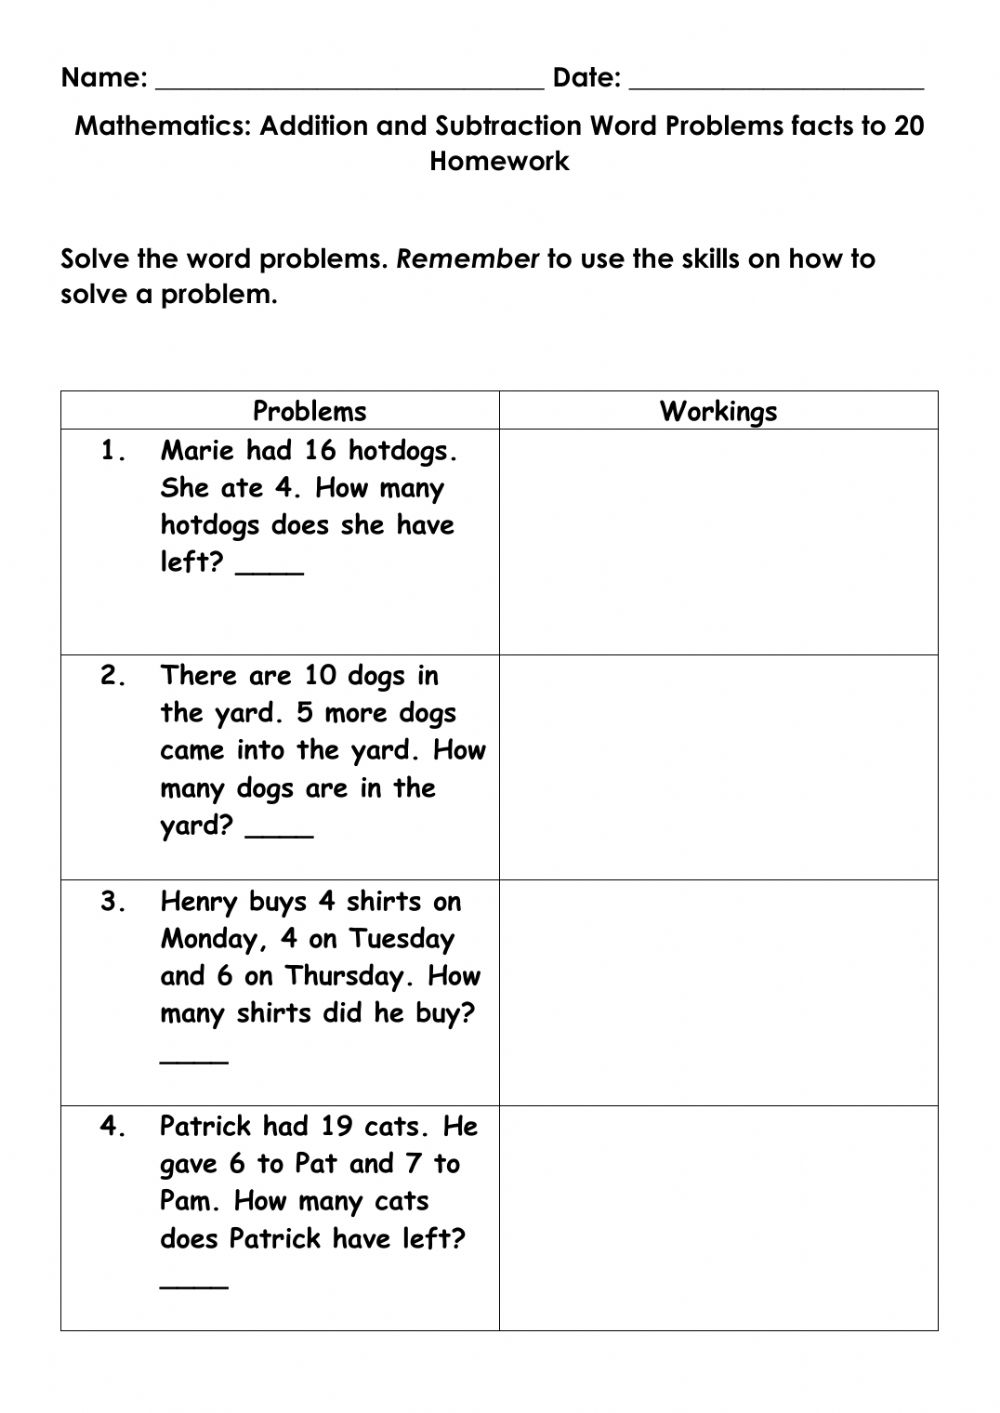 medium resolution of Mathematics Addition and Subtraction word problem facts to 20 Homework  worksheet